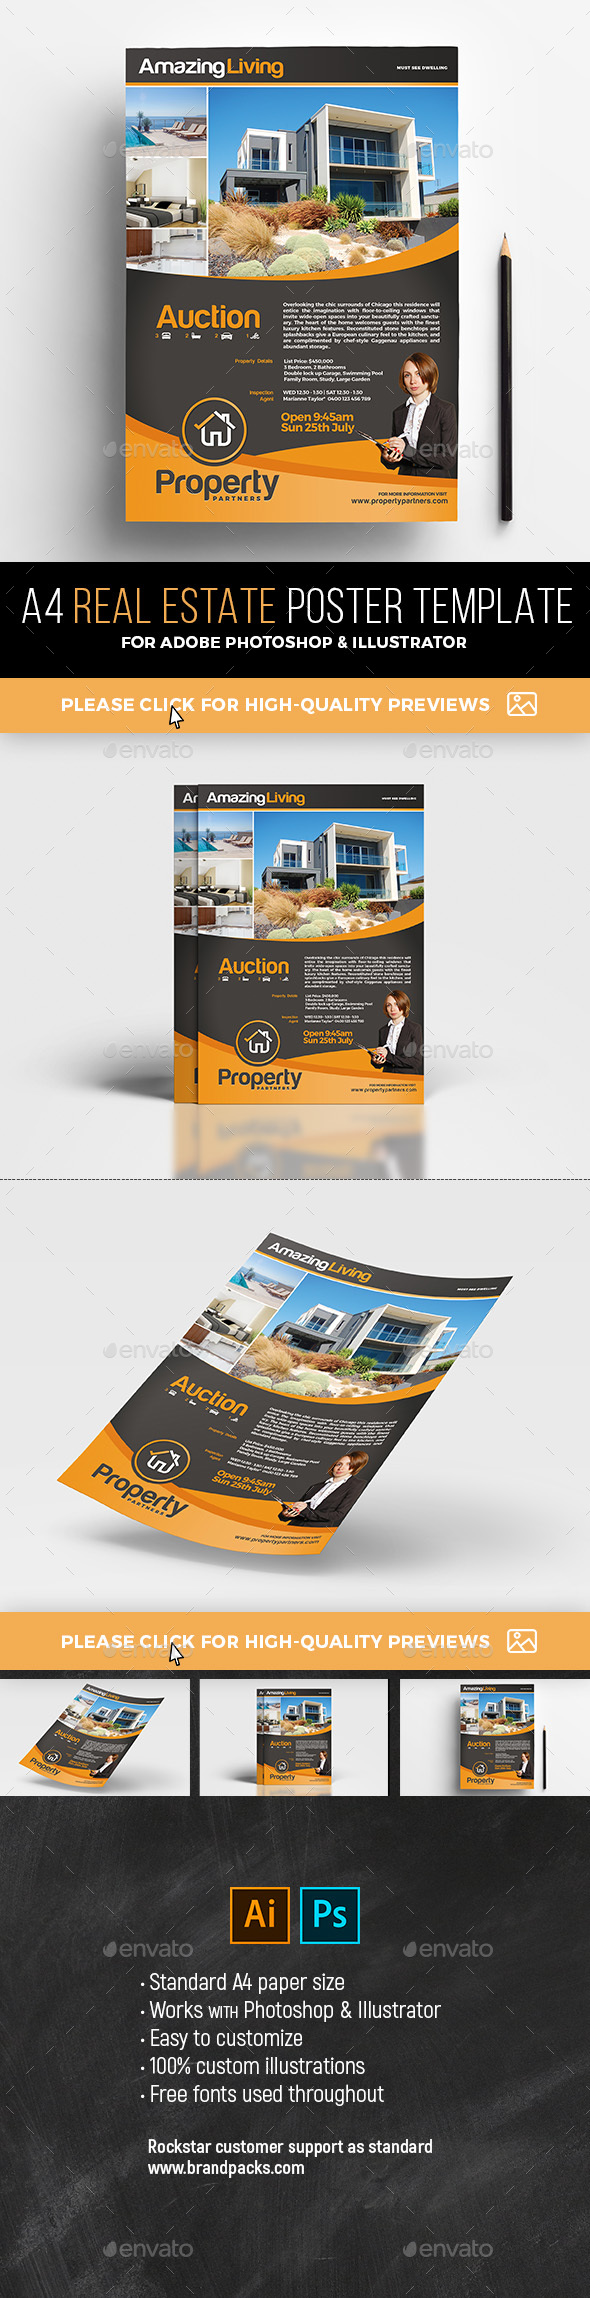 A4 Real Estate Poster Template - Commerce Flyers